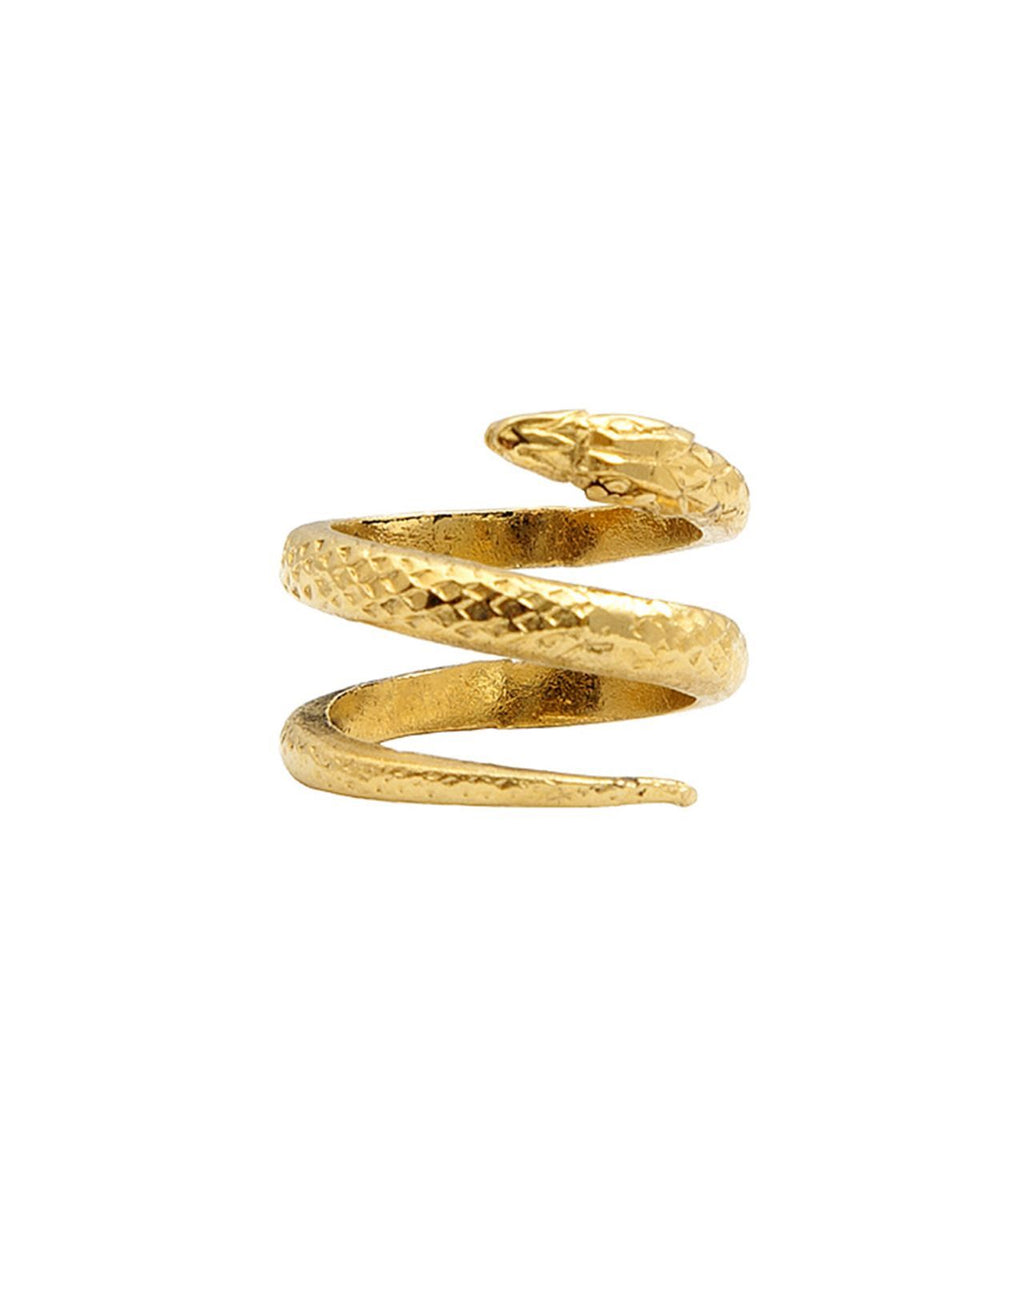 Bague Phalange Snake Or